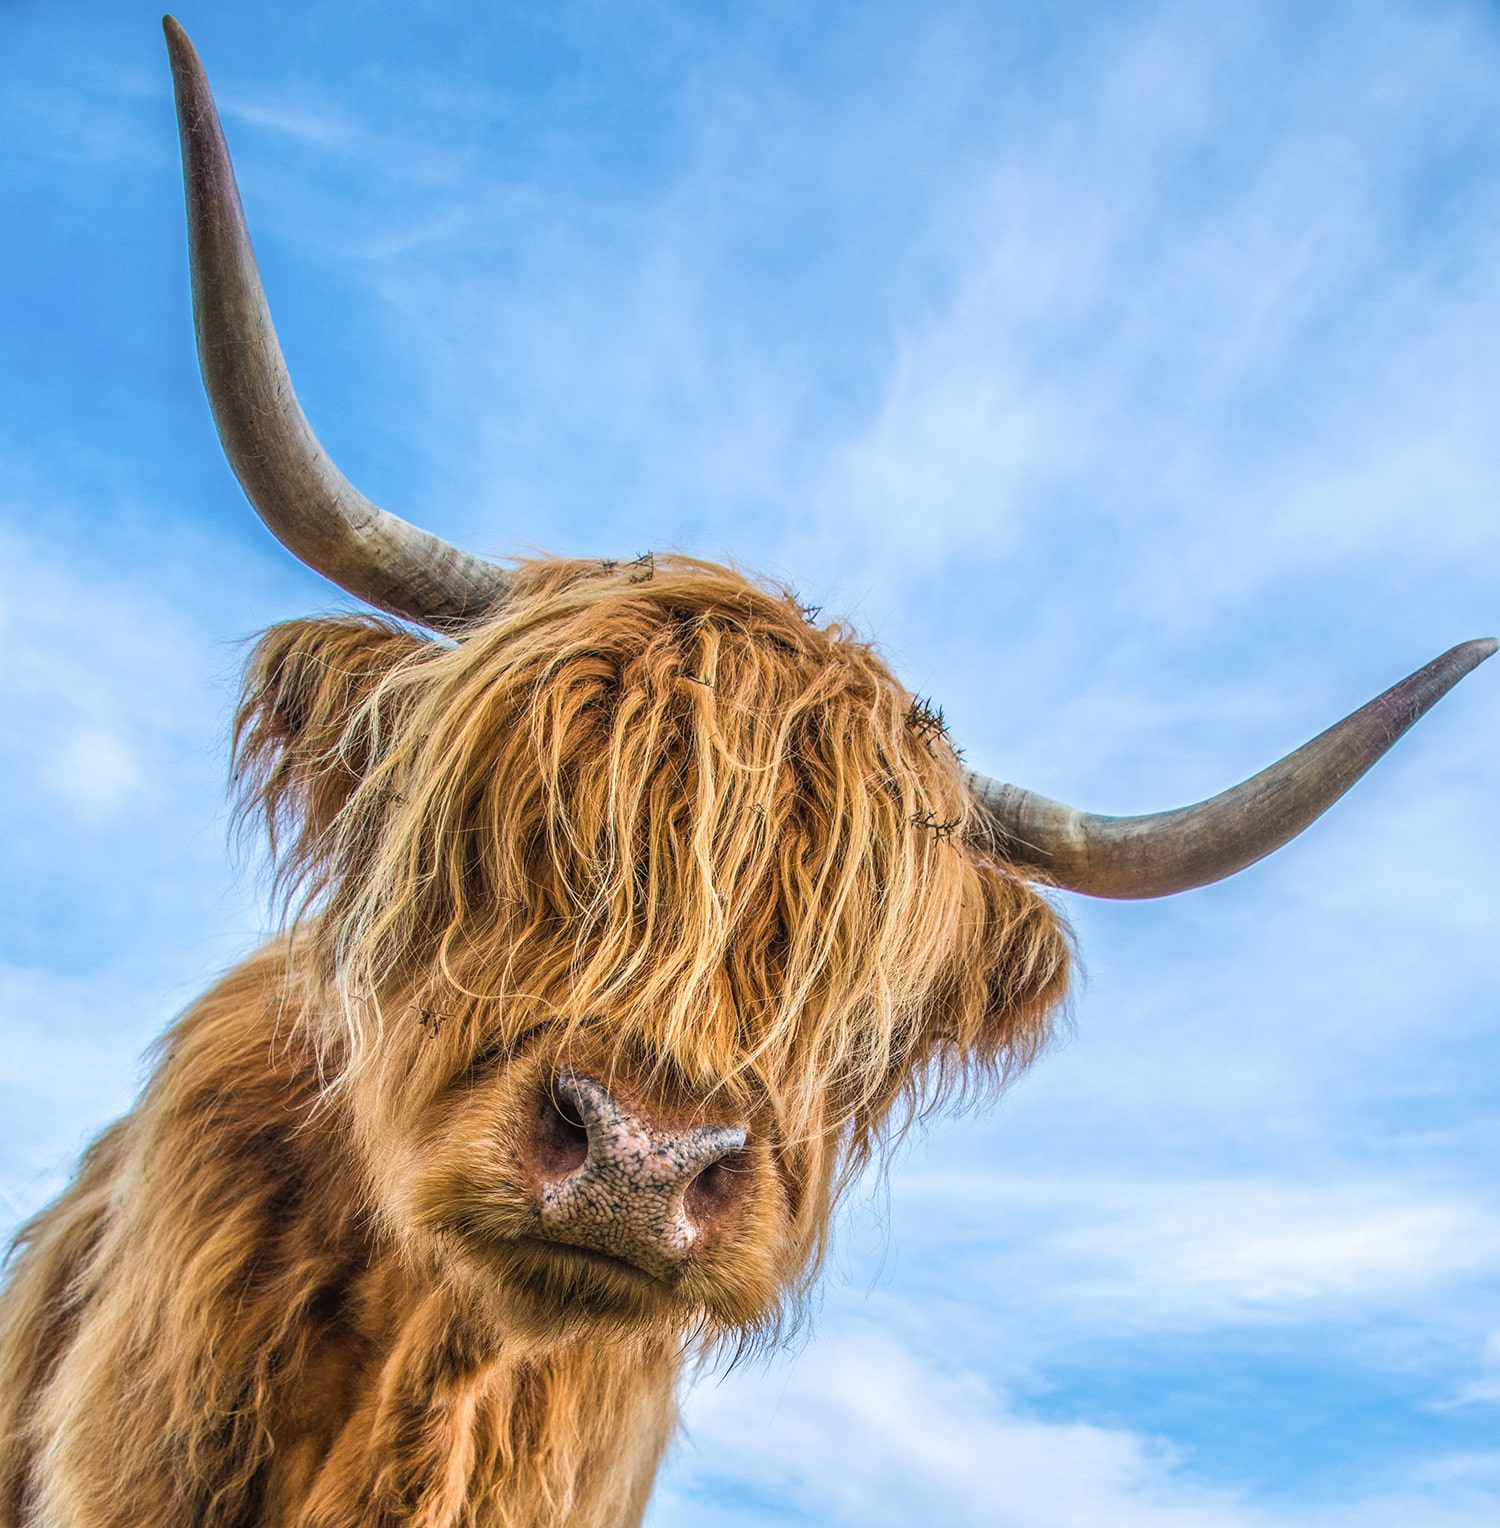 A lovely image of a highland cow and blue skies, one of many amazing experience that takes place on a guided tour of Scotland